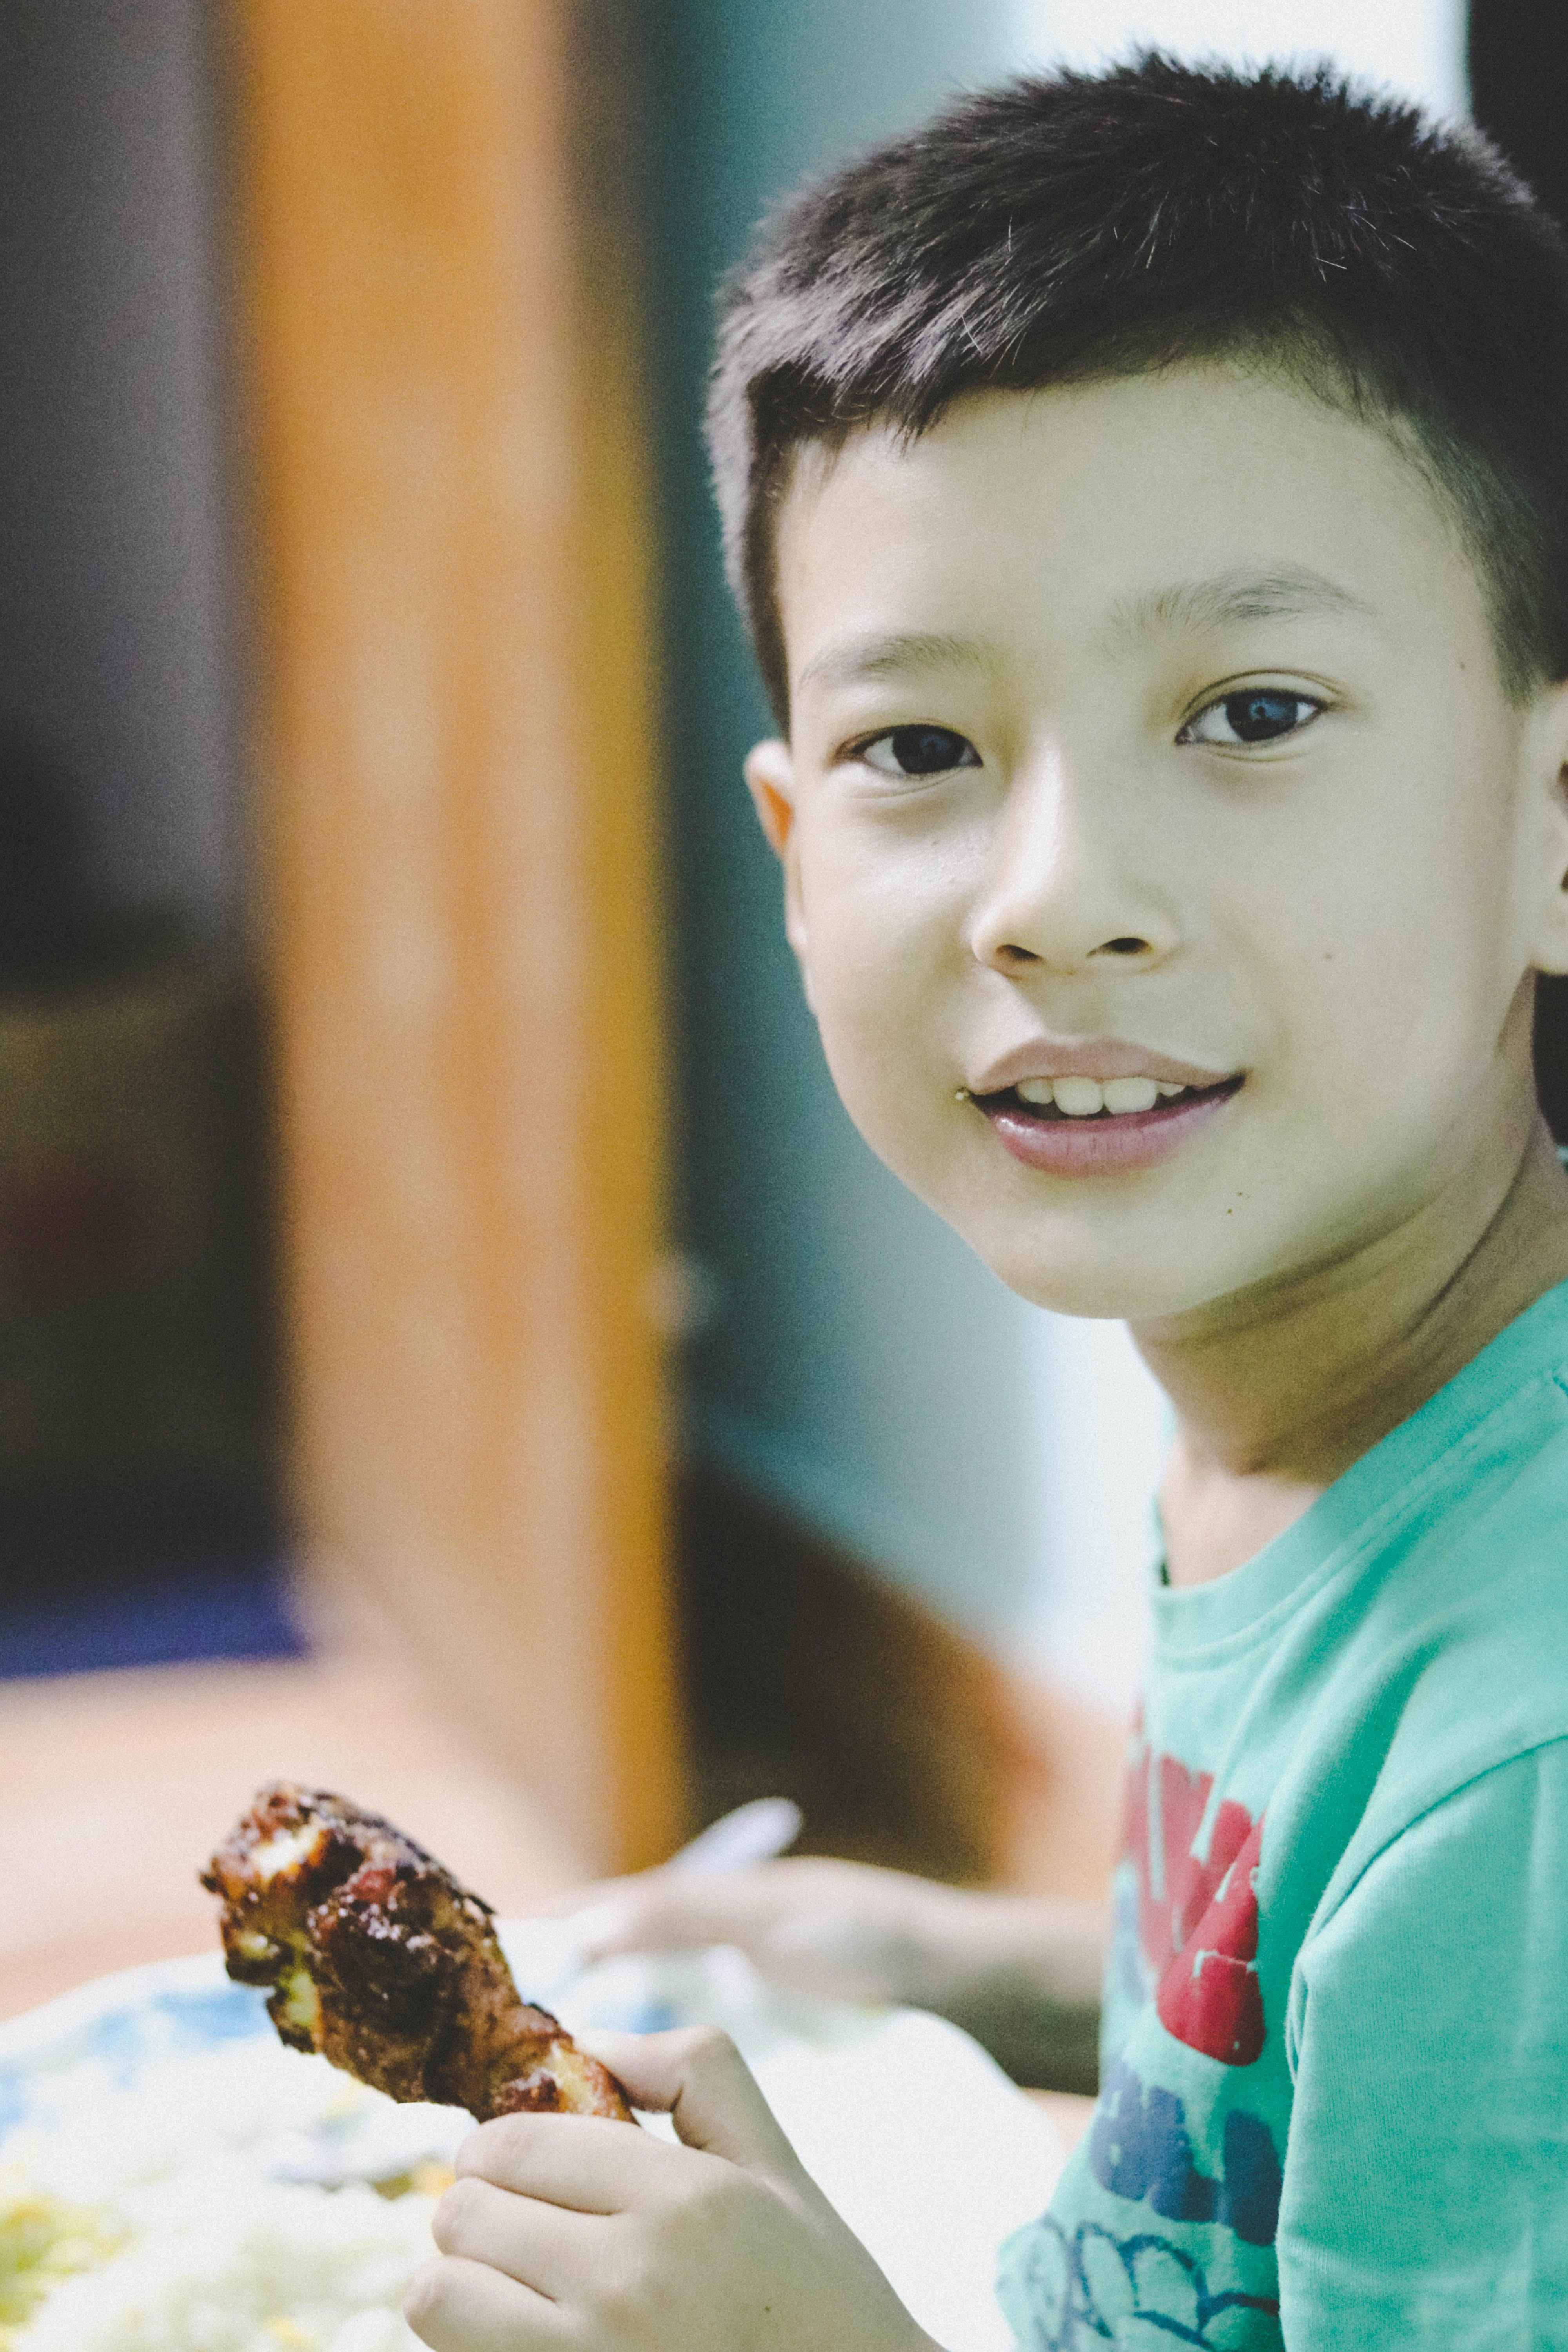 Free stock photo of boy, chicken, eating, fried chicken